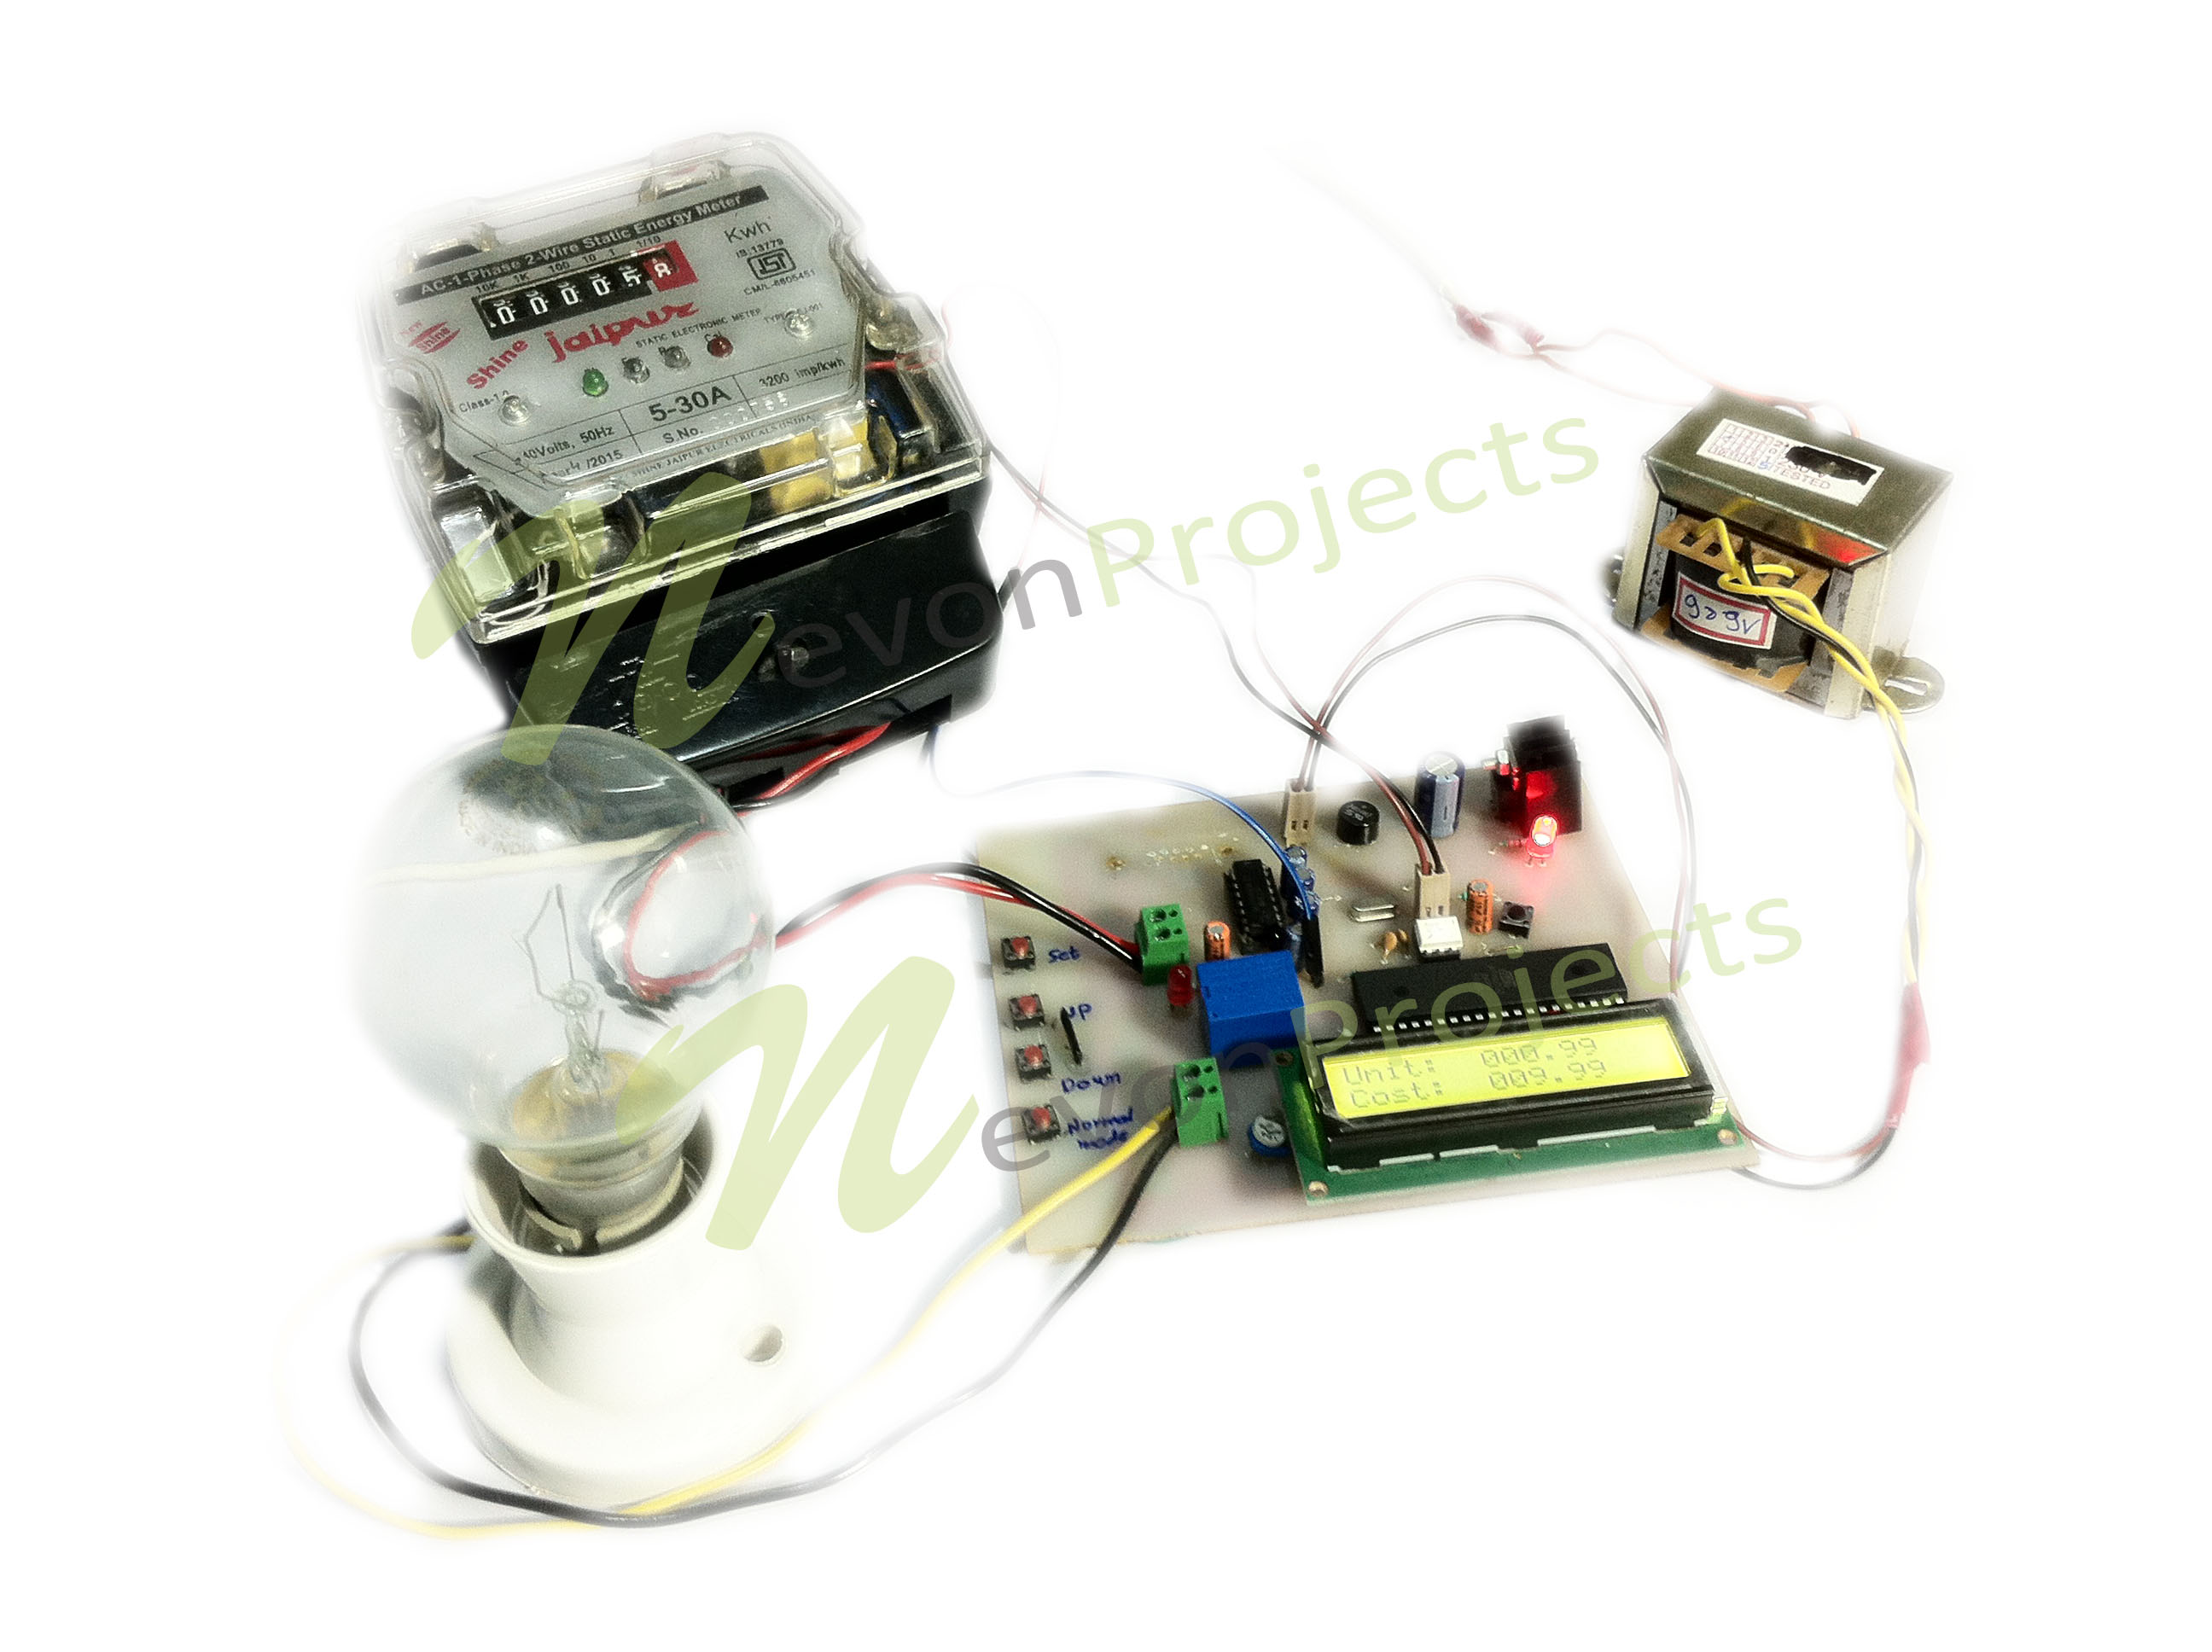 Device Load Monitor With Programmable Meter For Energy Audit 8051 Microcontroller Projects 038 Circuits